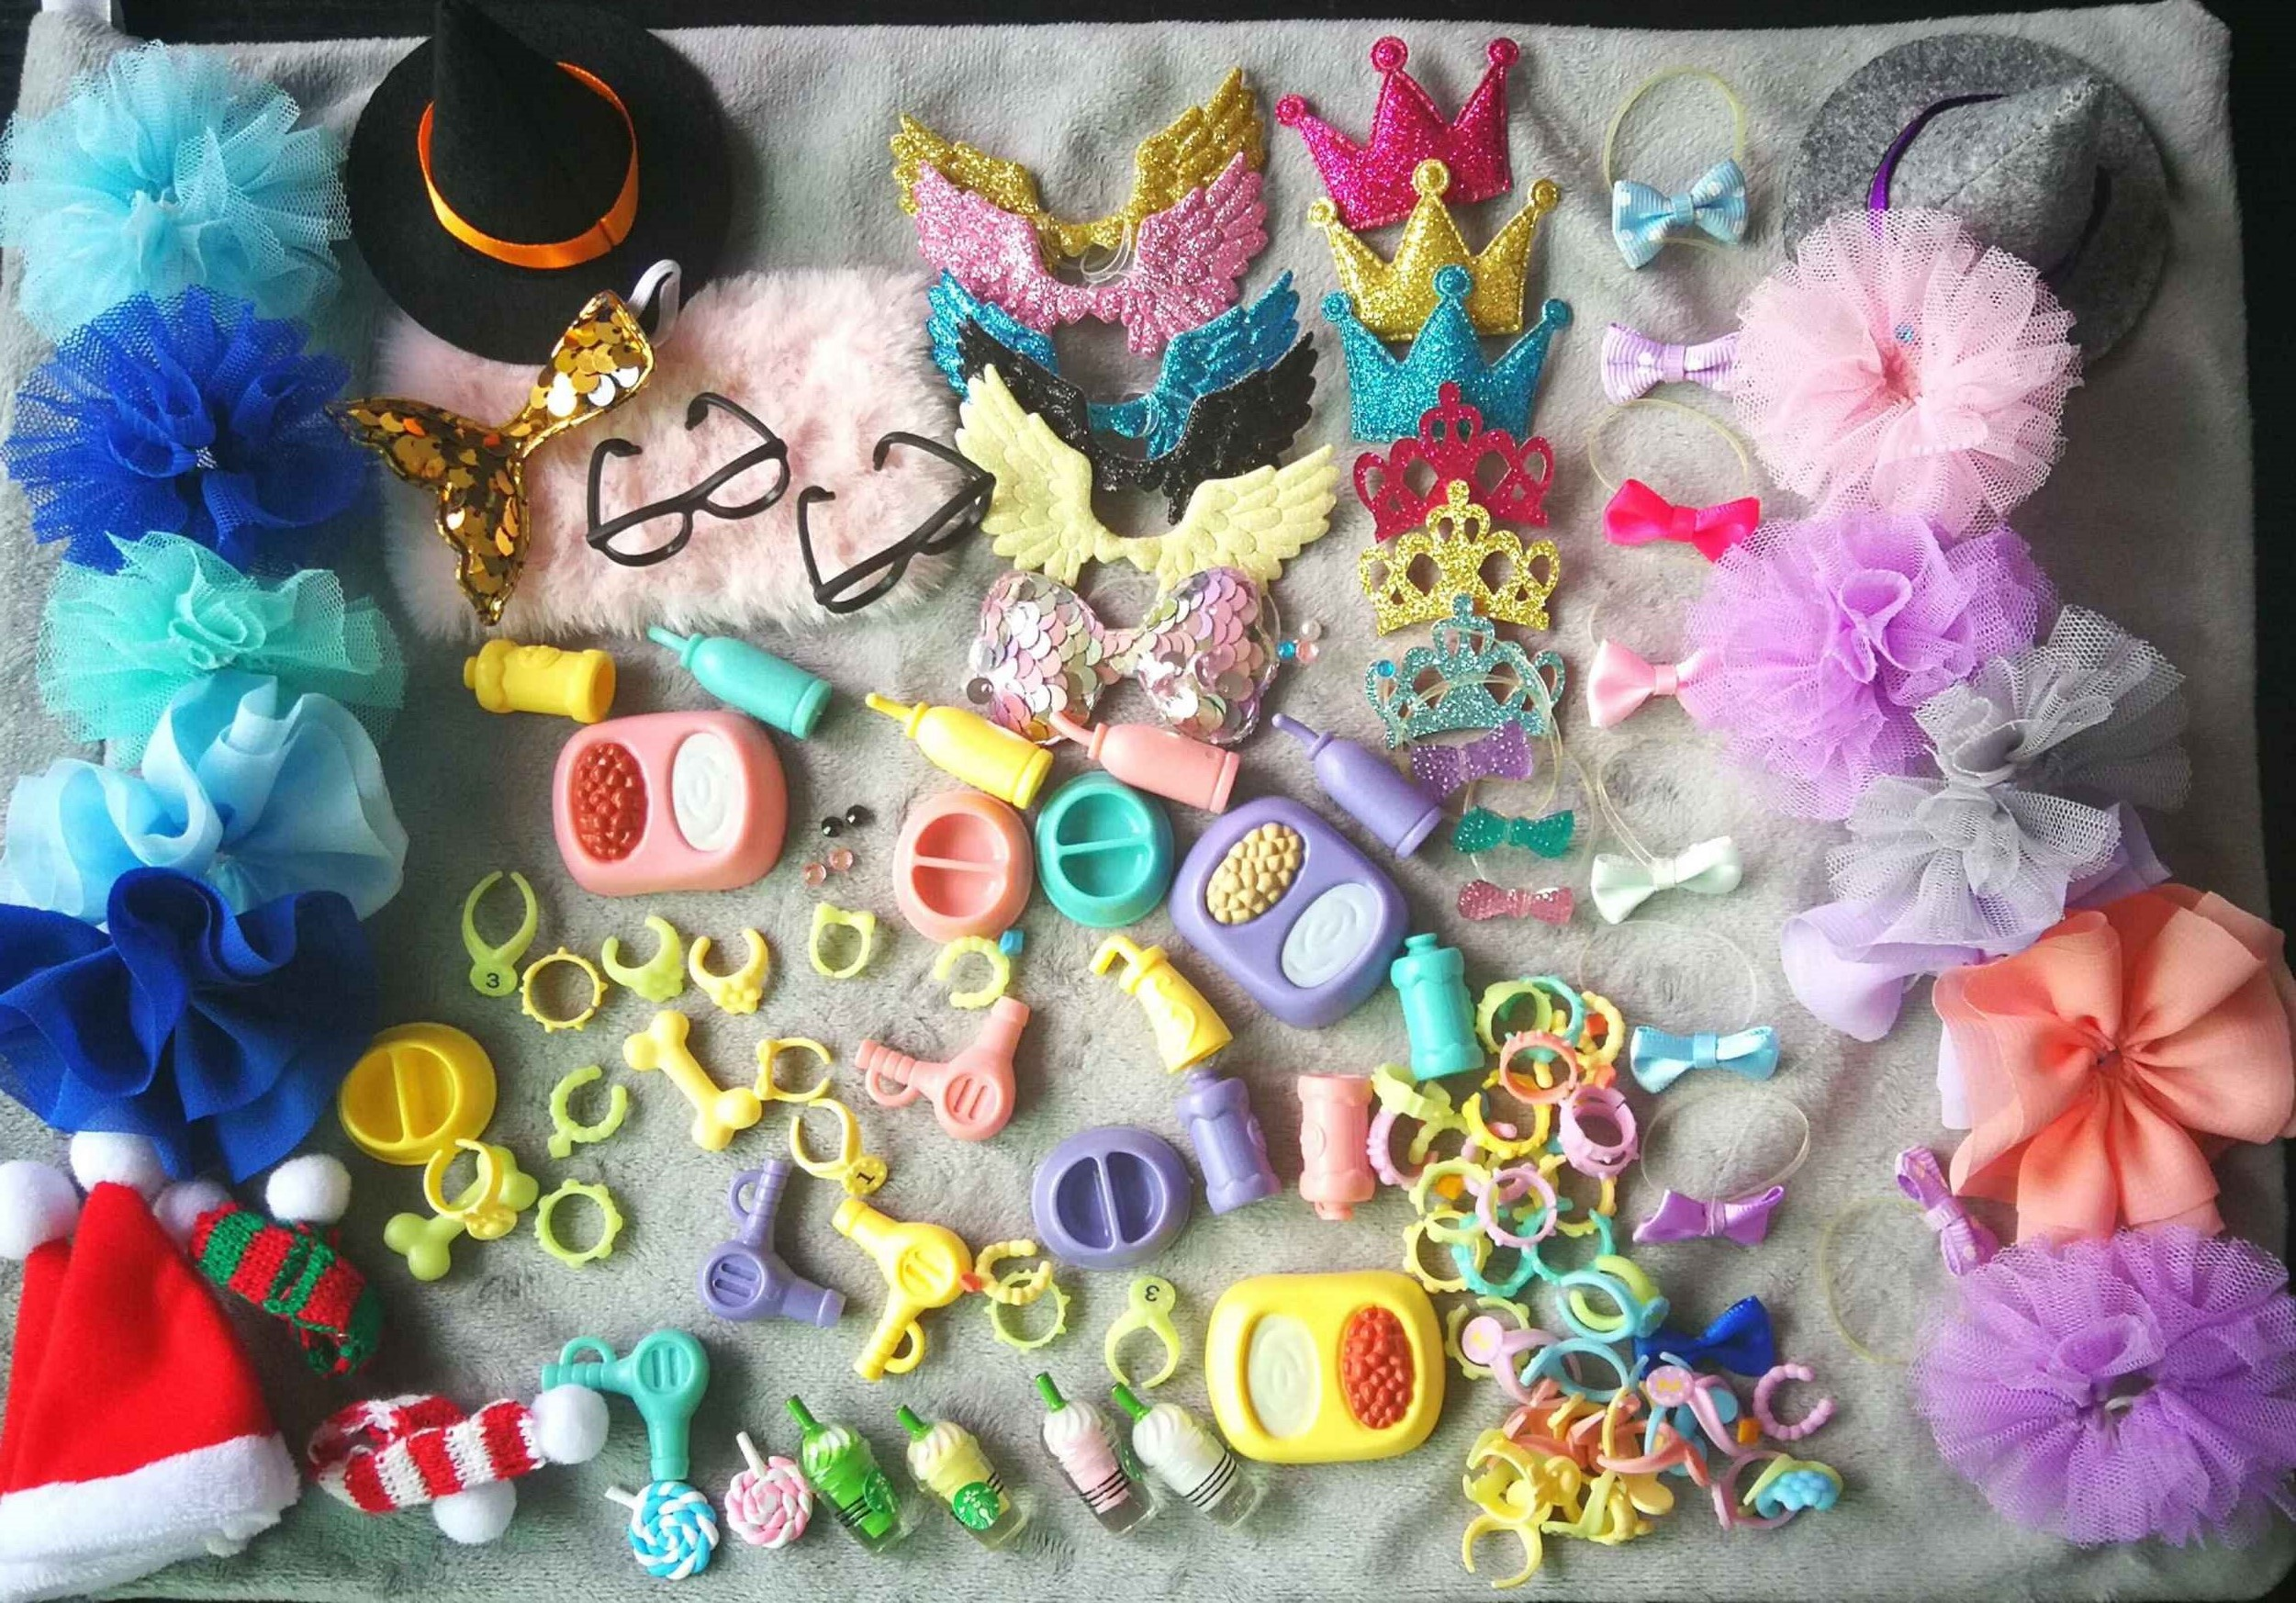 Necklace Earring Dress Bones Wings Pet-Shop-Accessories Crown Food-Drinks 18-Pcs Skirt